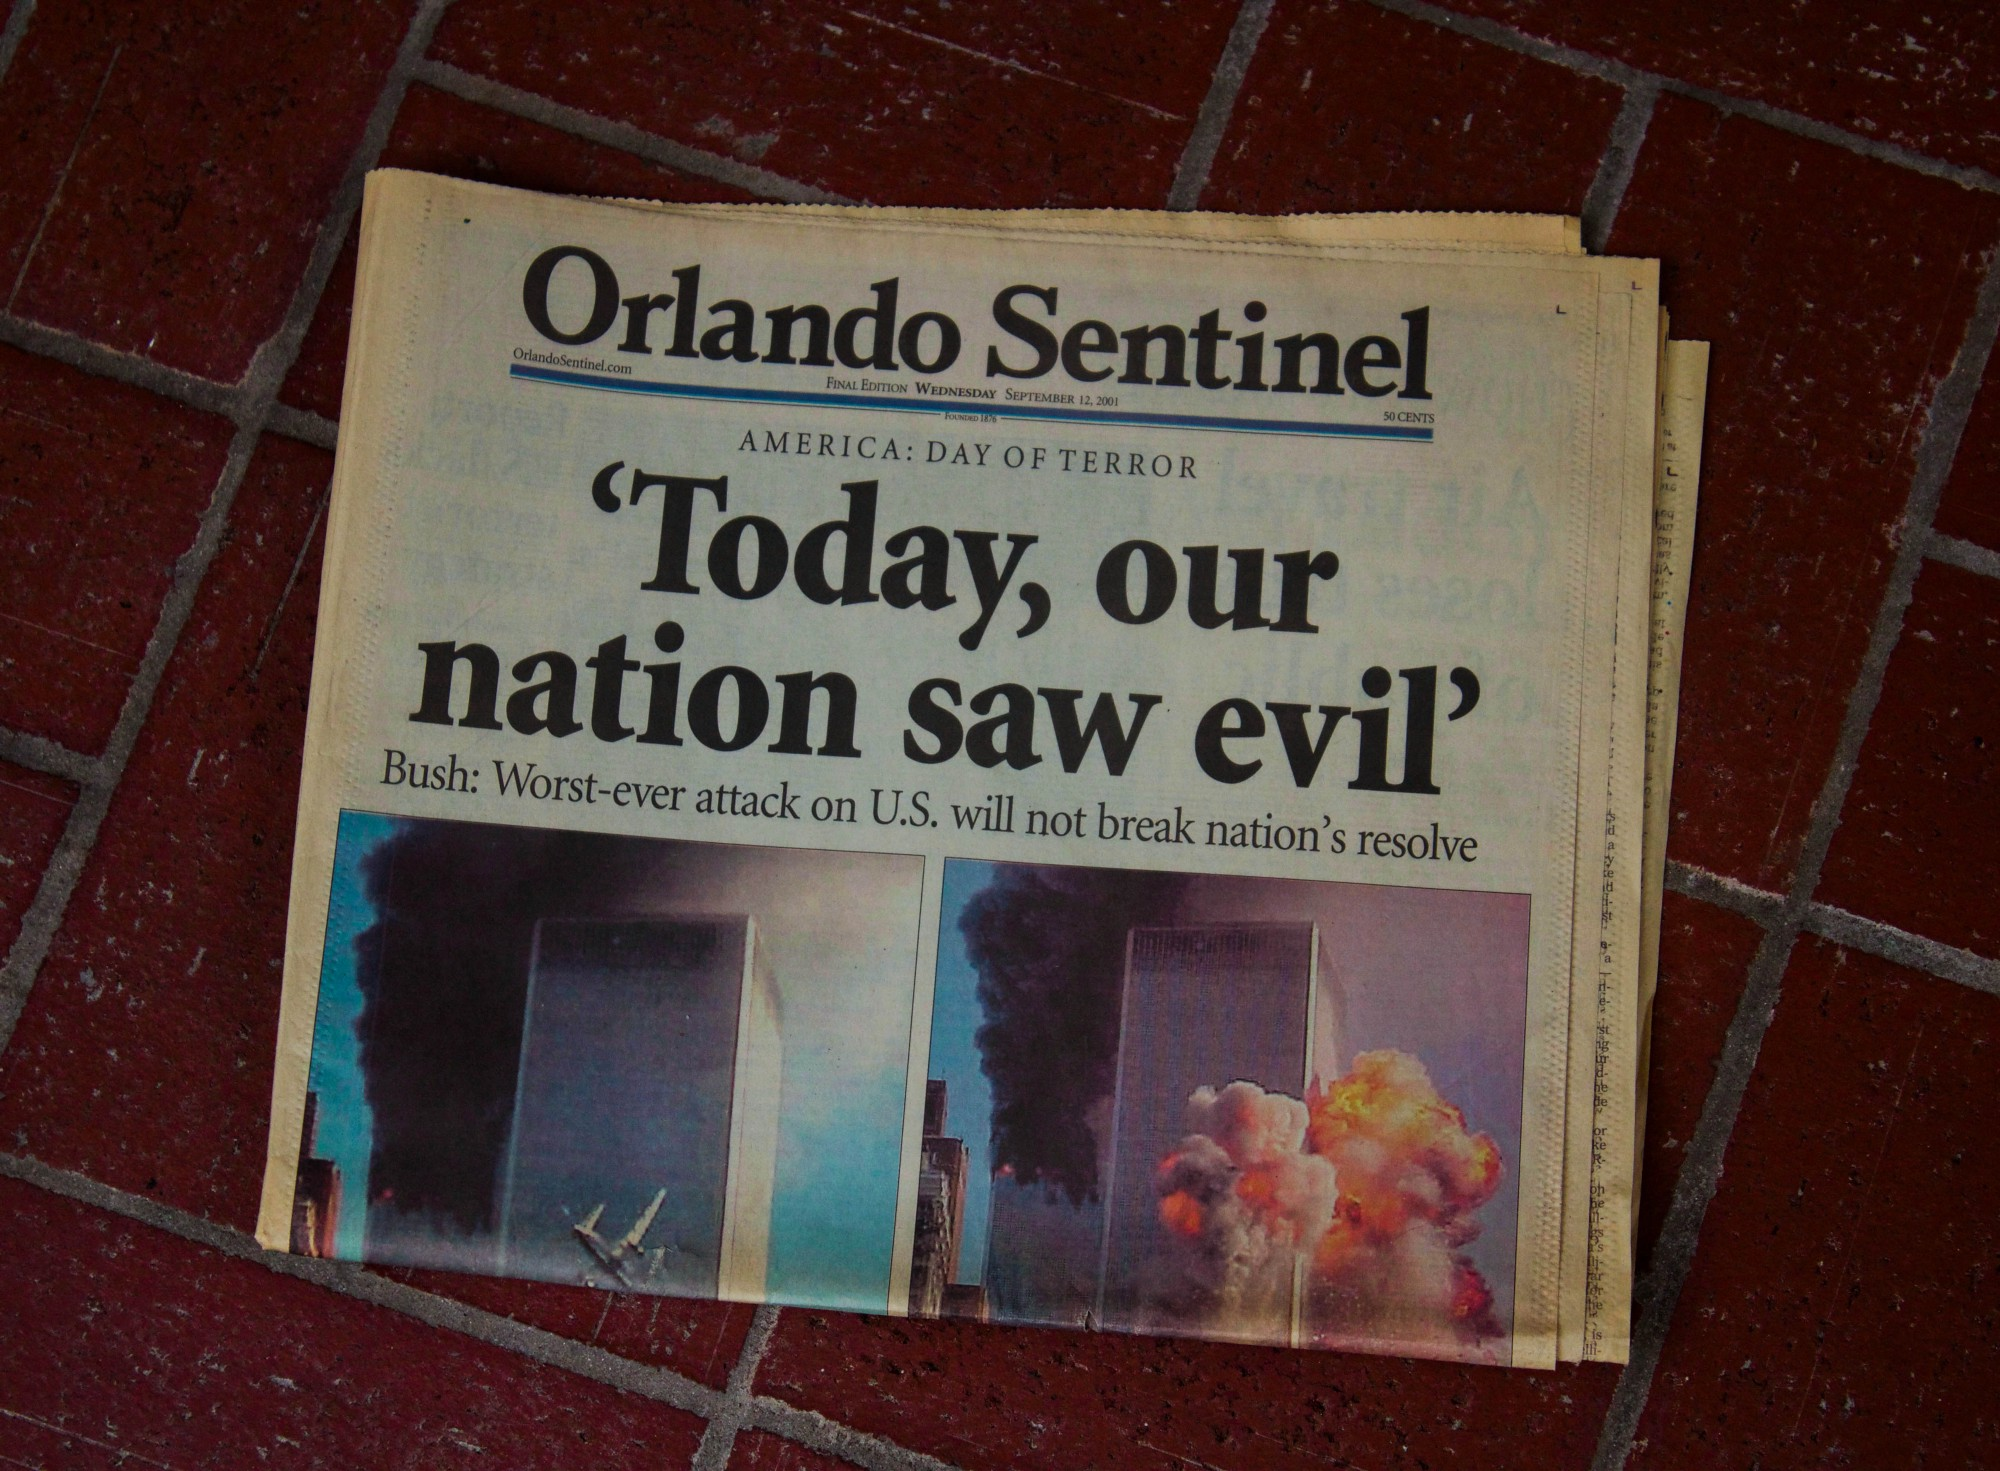 Pictured is the cover of the Orlando Sentinel newspaper coverage on Sept 12, 2001. The headline states: 'Today, our nation saw evil' and the story photo shows both of the Twin Towers surrounded by smoke and explosions.